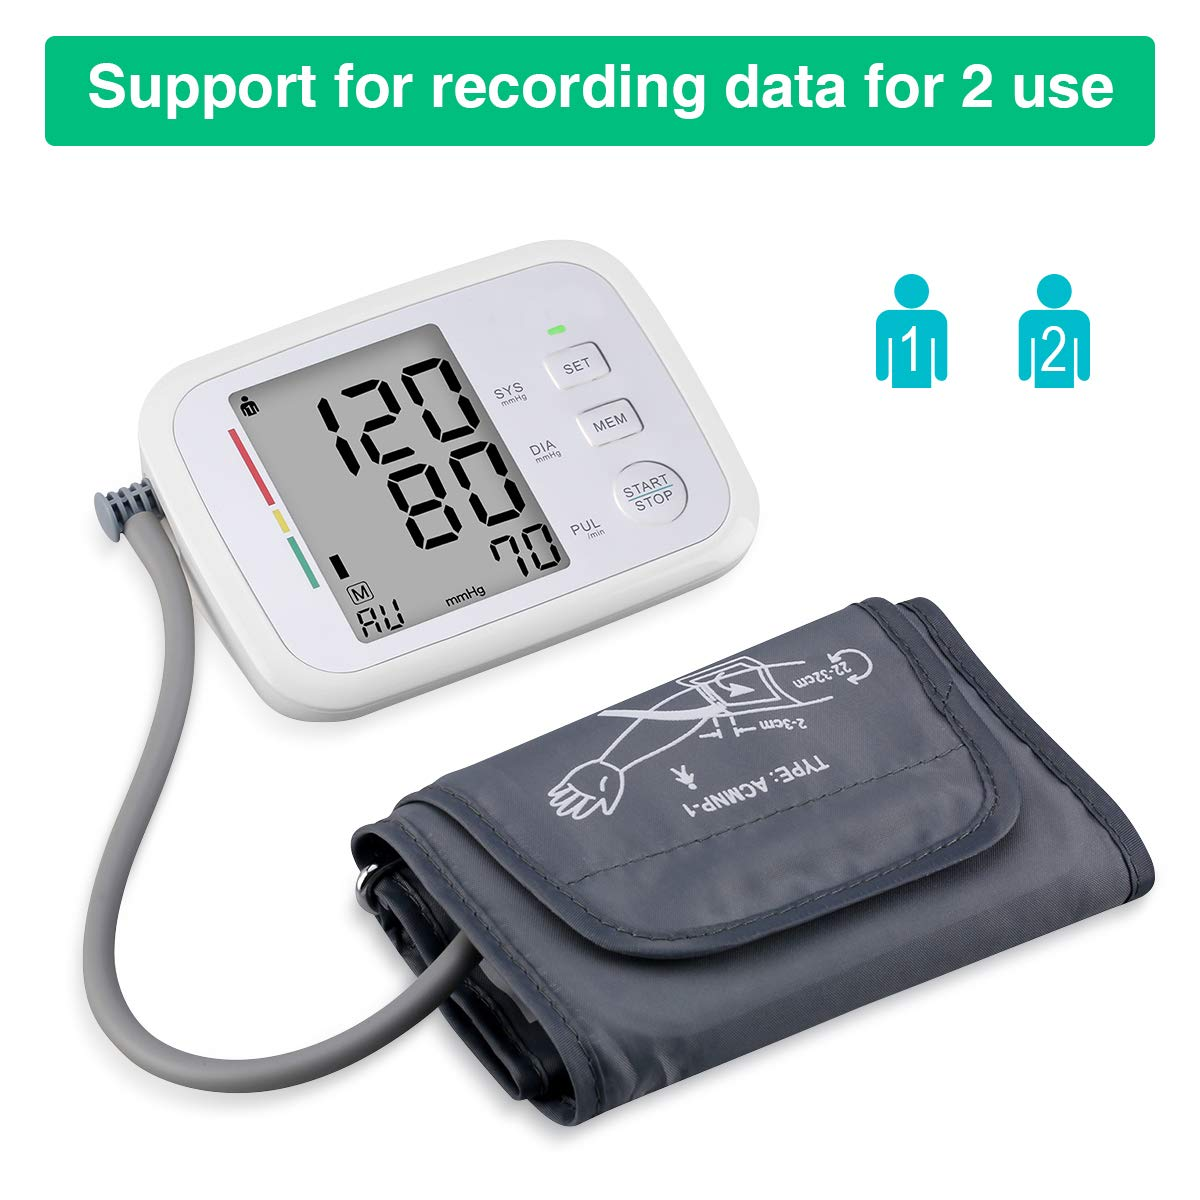 Prymax Blood Pressure Monitor Upper Arm Large Cuff Fits Arms 8.5-17 Inches Portable Automatic Digital Monitor, FDA Approved, at Home, Irregular Heart Beat Detection, Large Screen, 2 User*90 Reading by PRYMAX (Image #5)